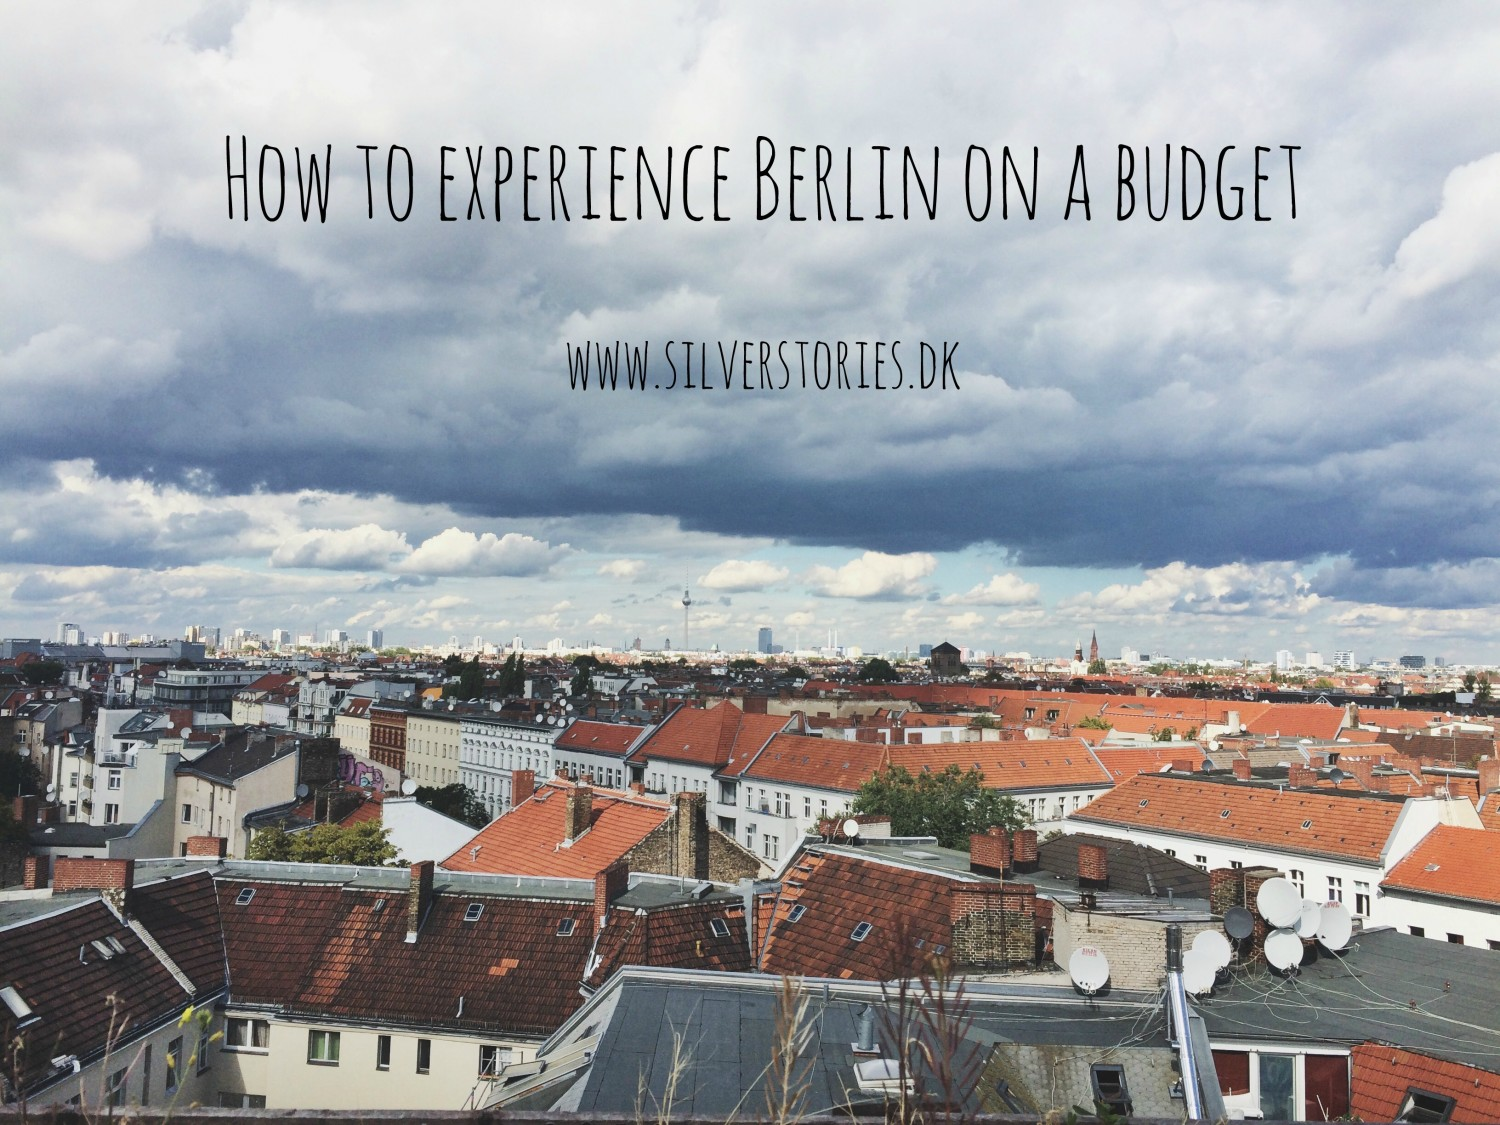 How to experience Berlin on a budget